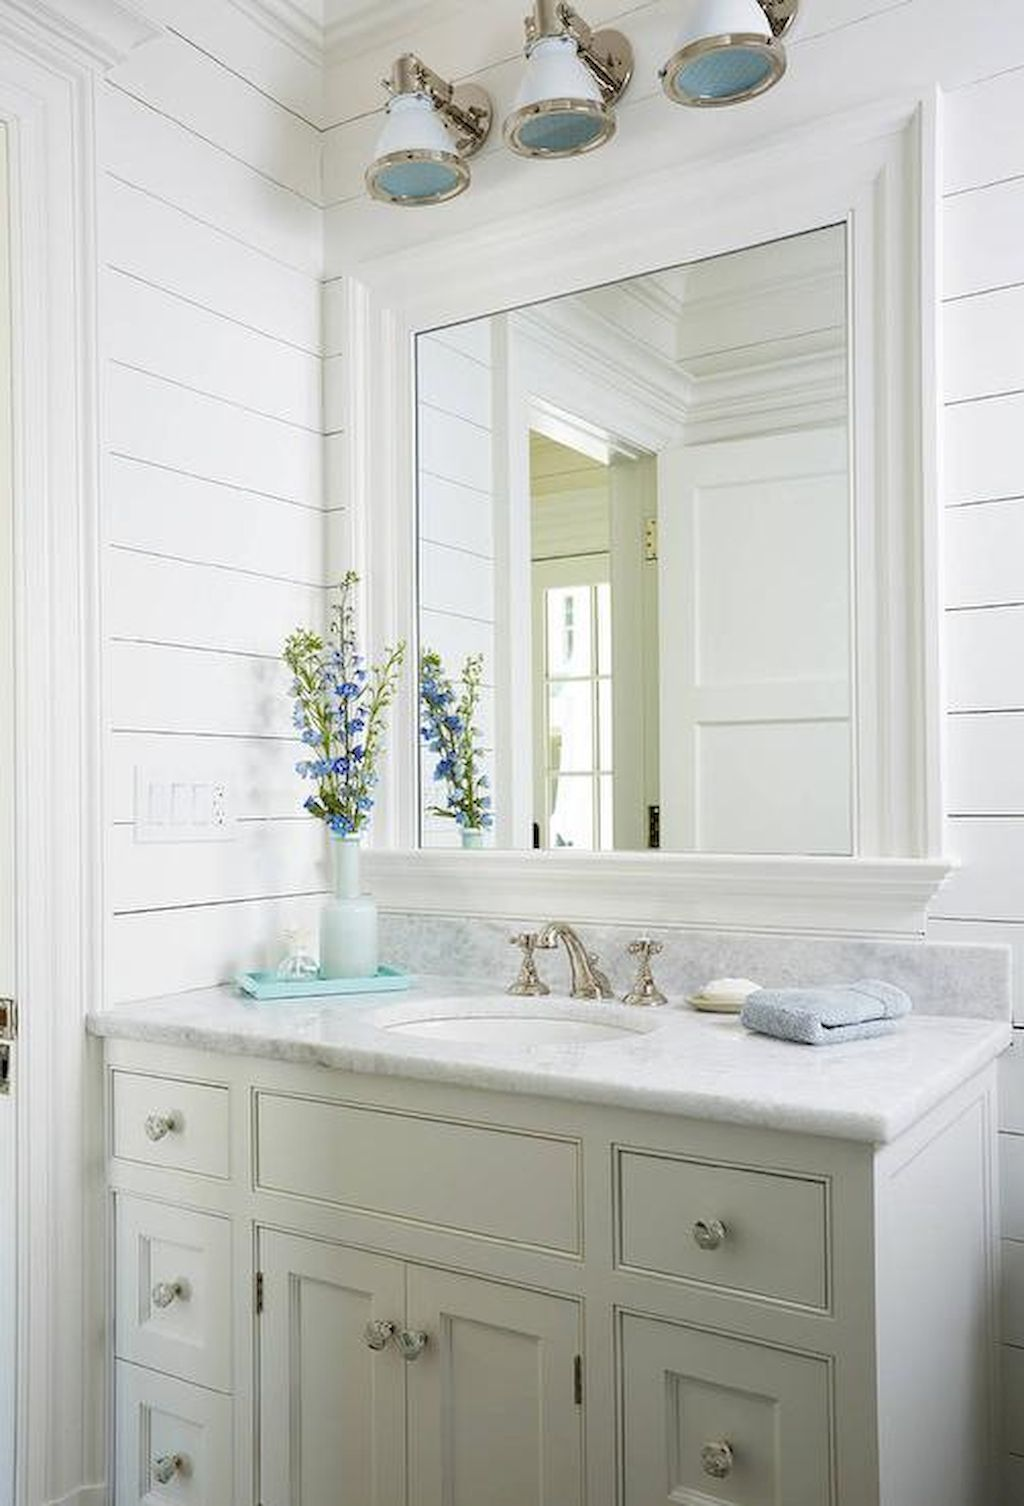 Best inspire coastal nautical bathroom design & decor ideas (68 ...